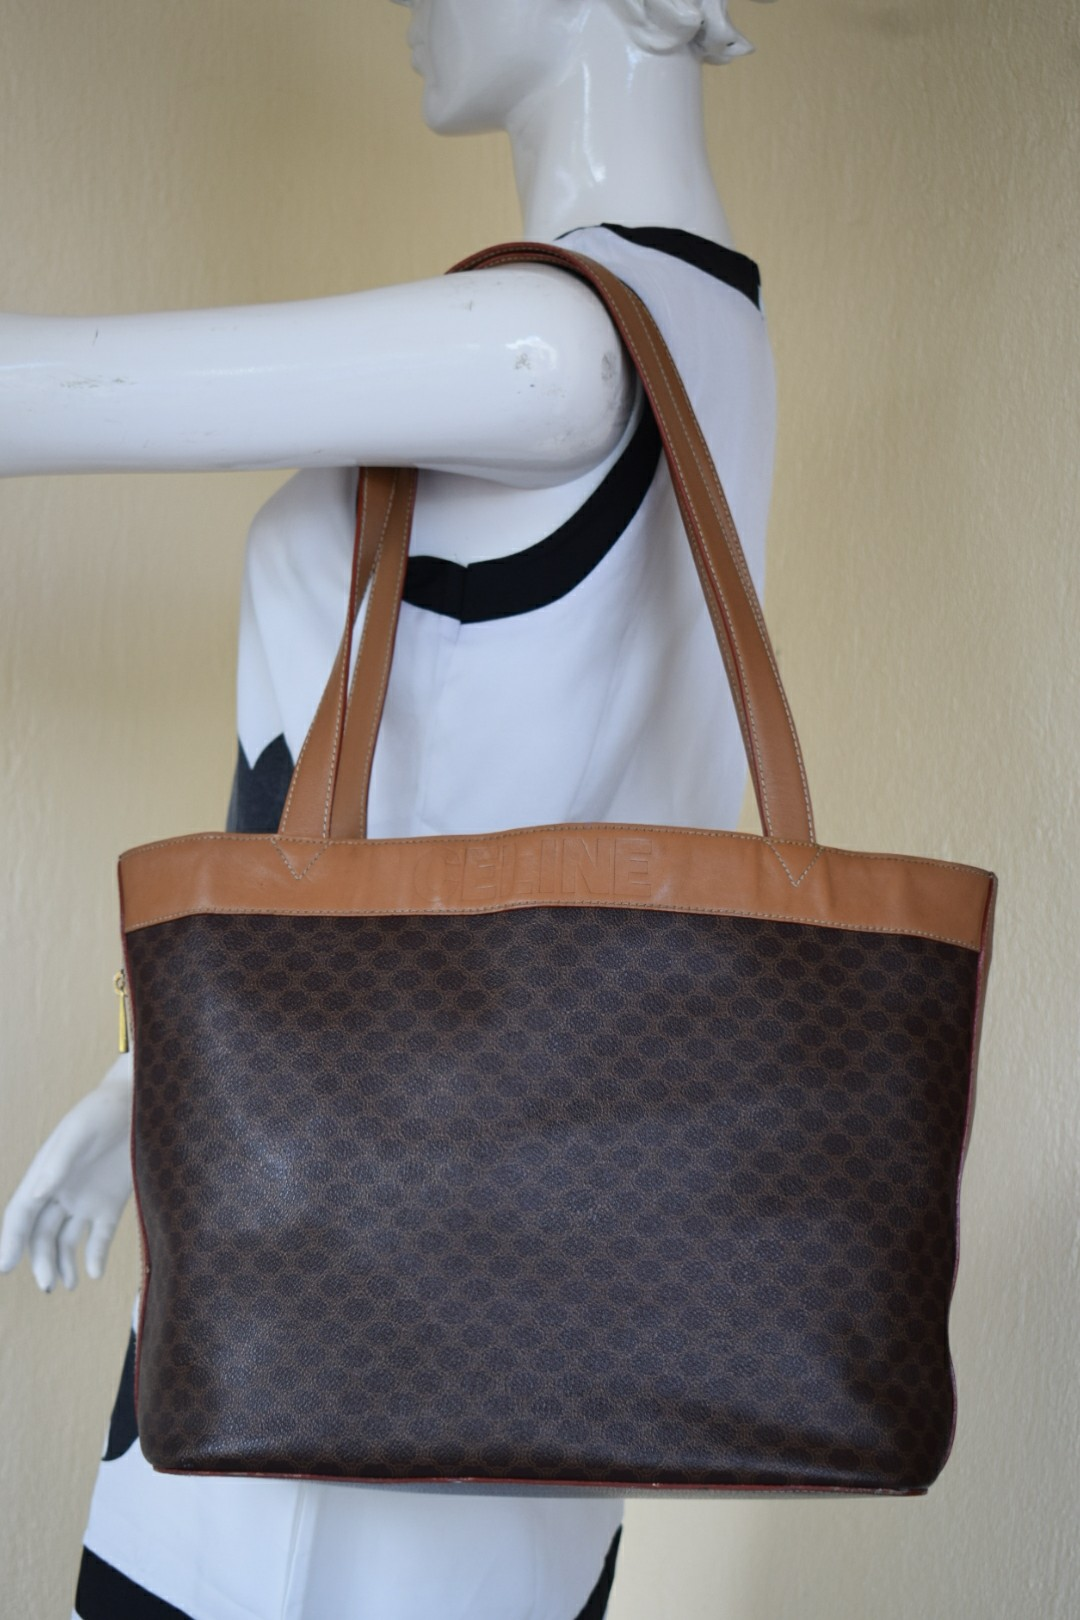 d14f2960d4 Authentic Celine Macadam Monogram Shoppers Tote Bag